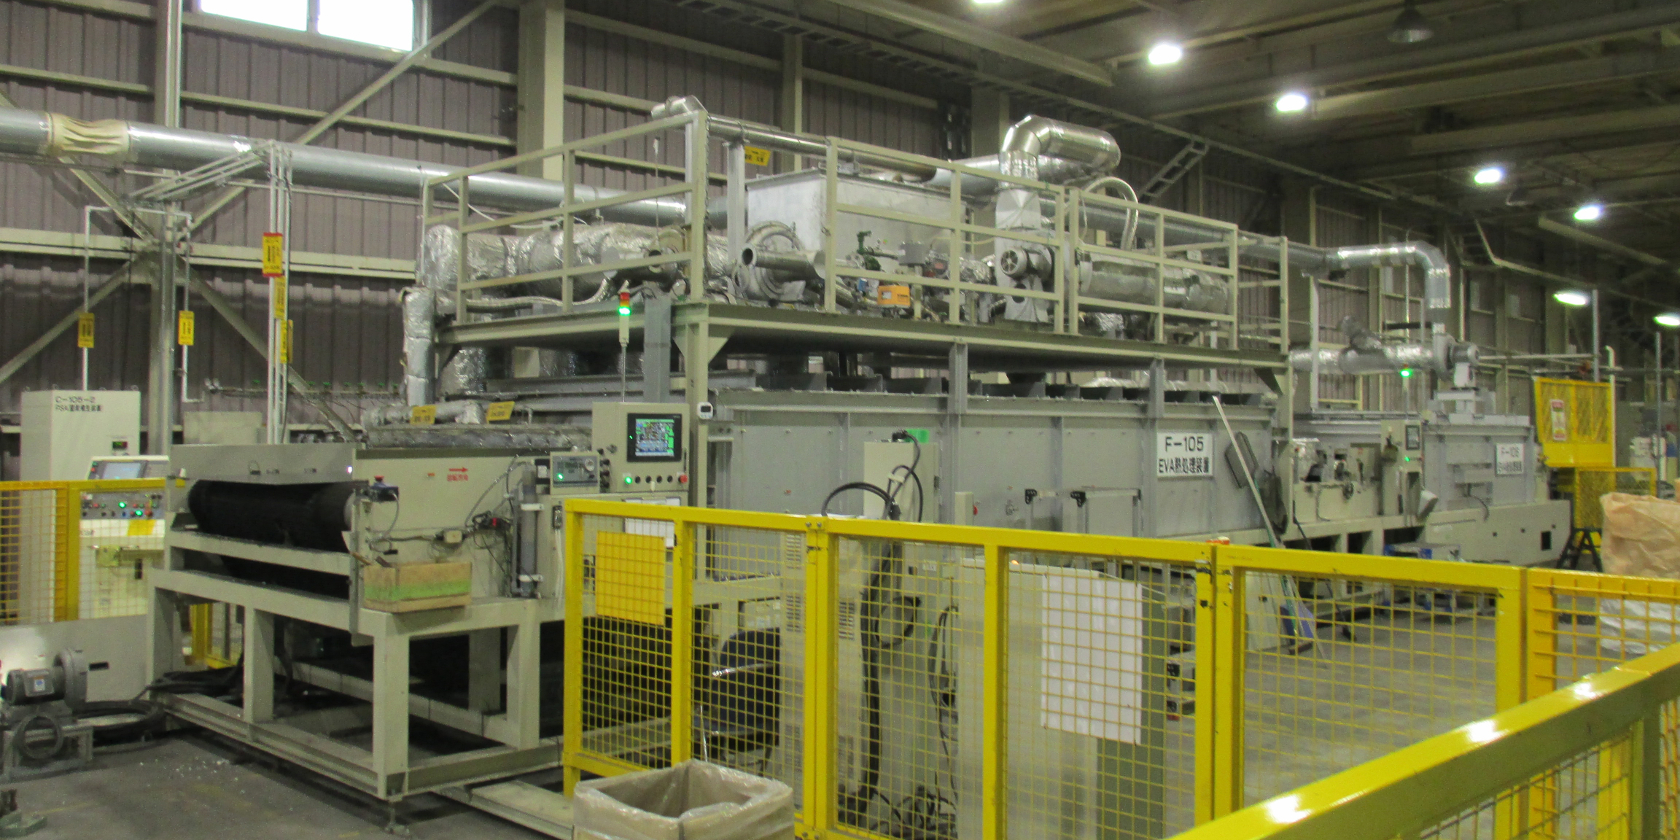 Shinryo Moves Into Carbon Fiber Recycling Japan Chemical